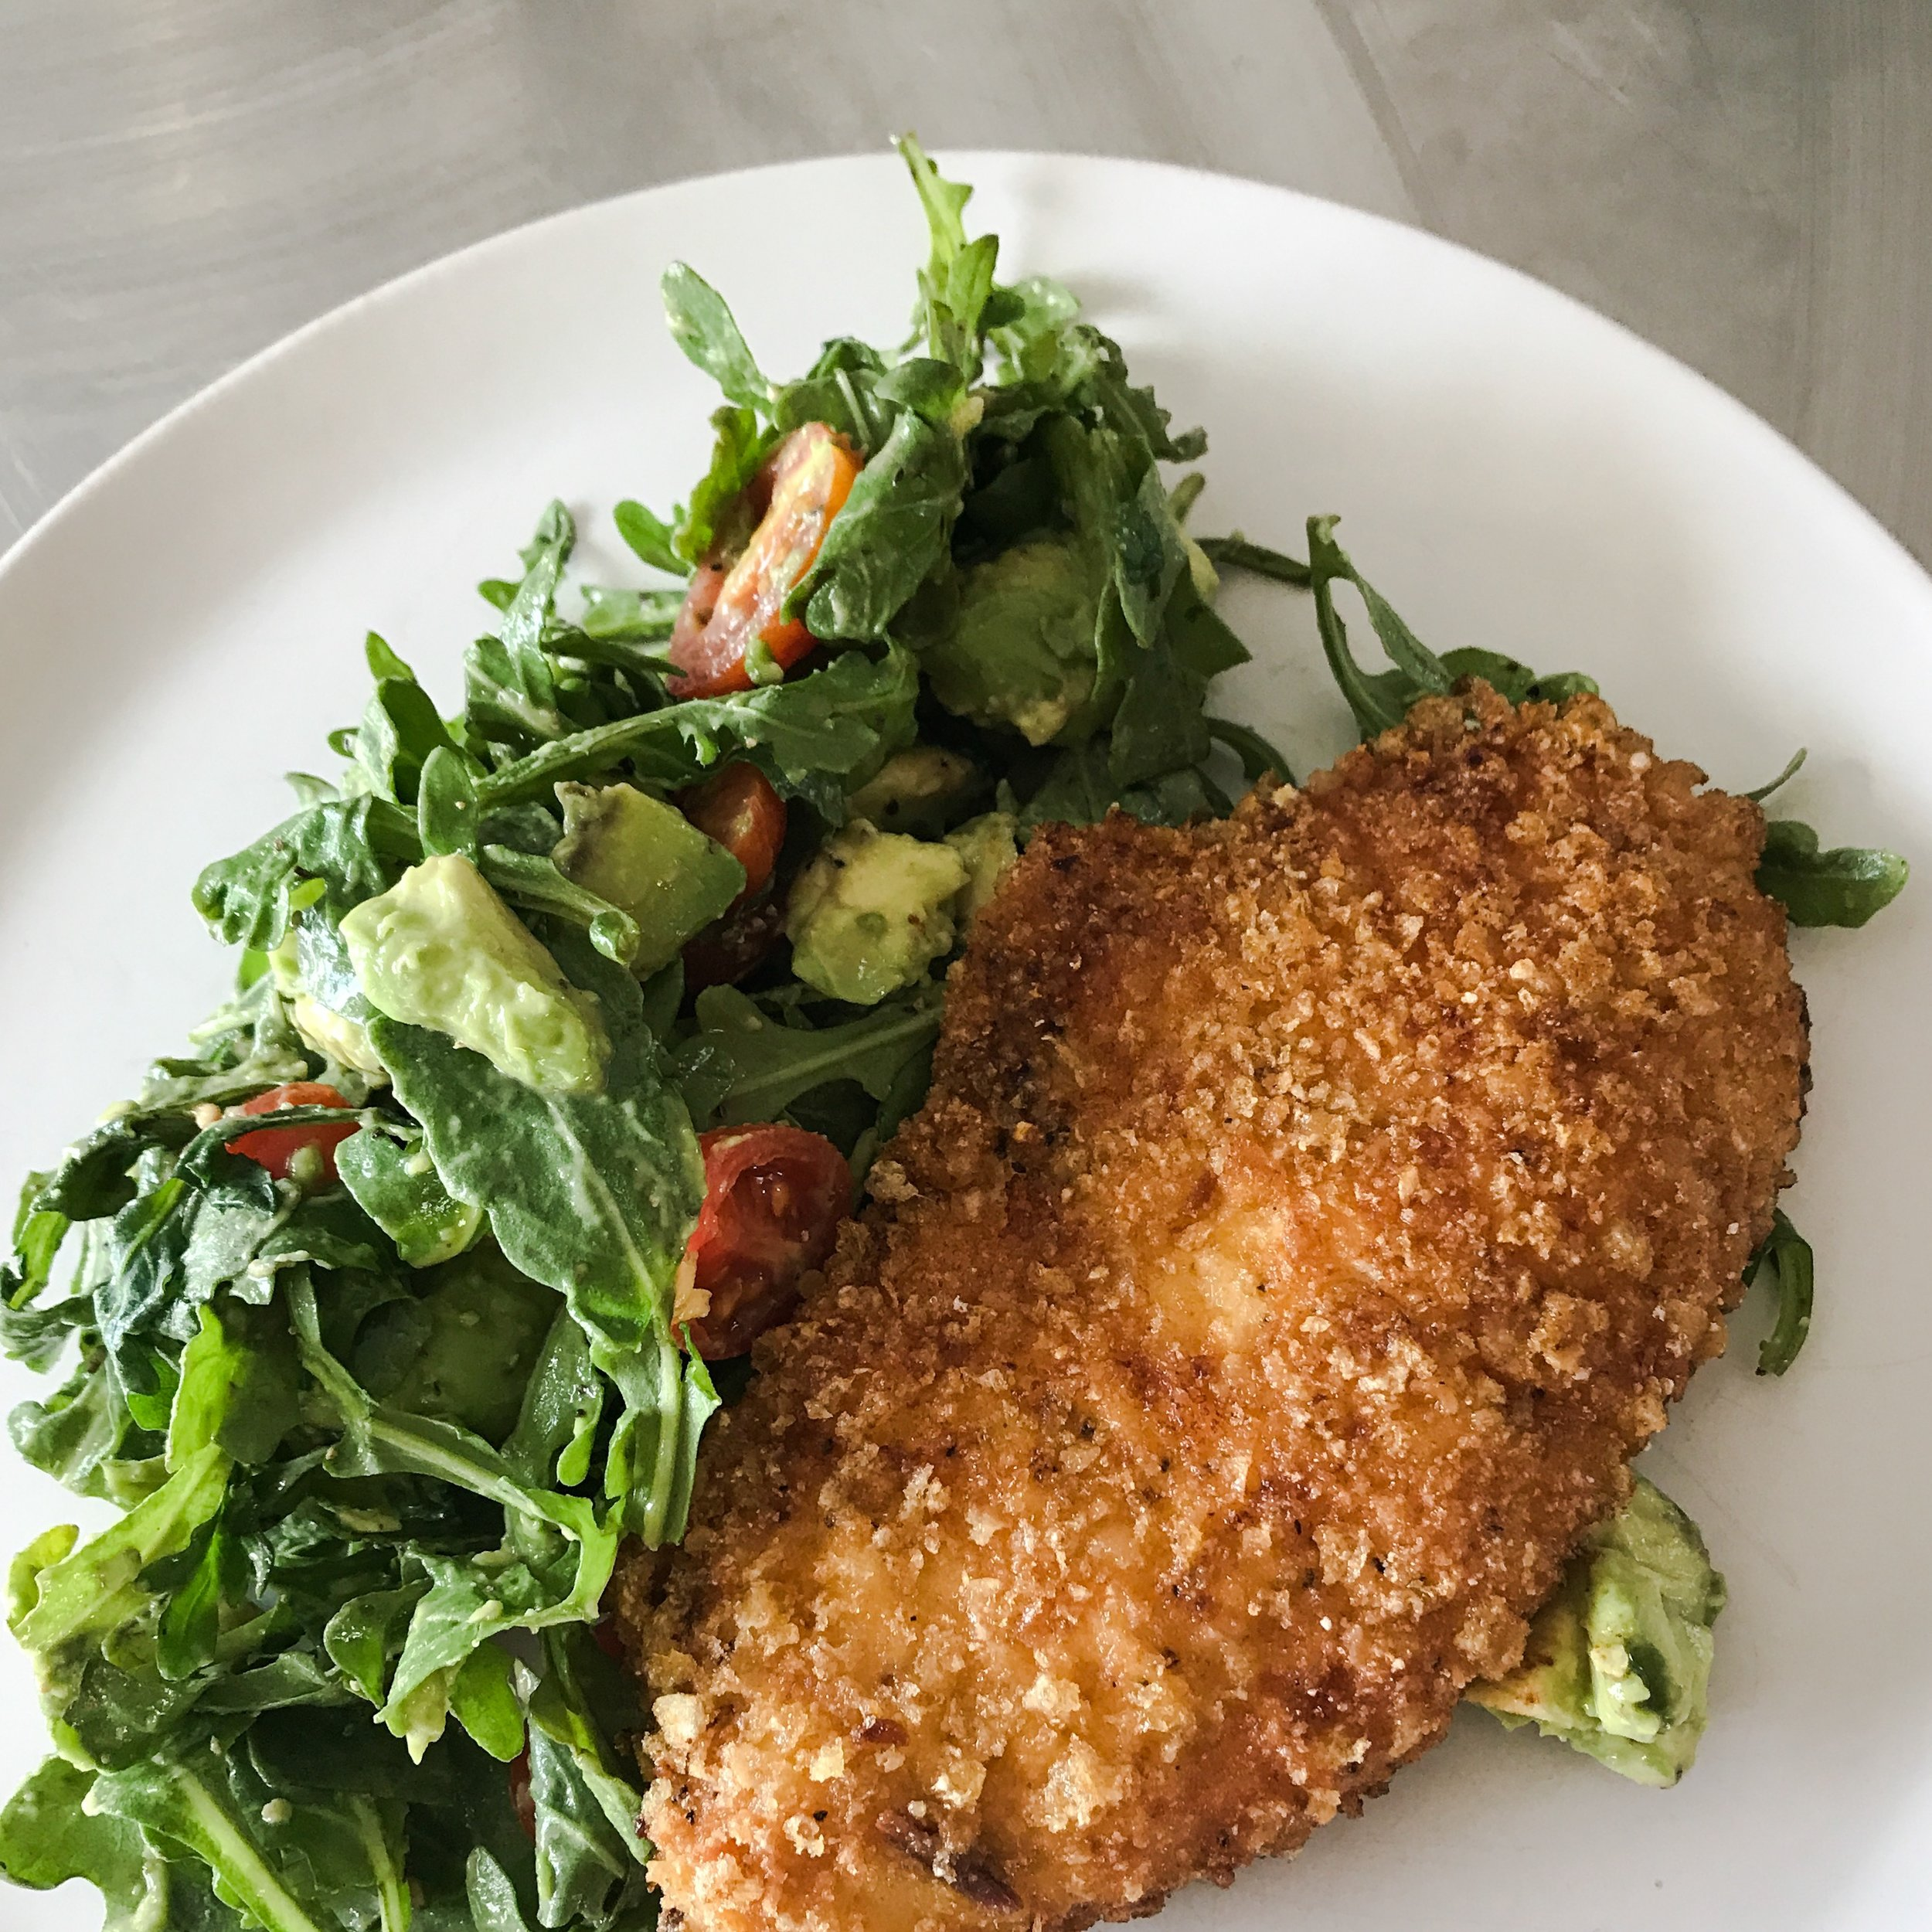 KETO RECIPE: CRUNCHY PORK RIND CHICKEN MILANESE by Jen Fisch via Keto In The City